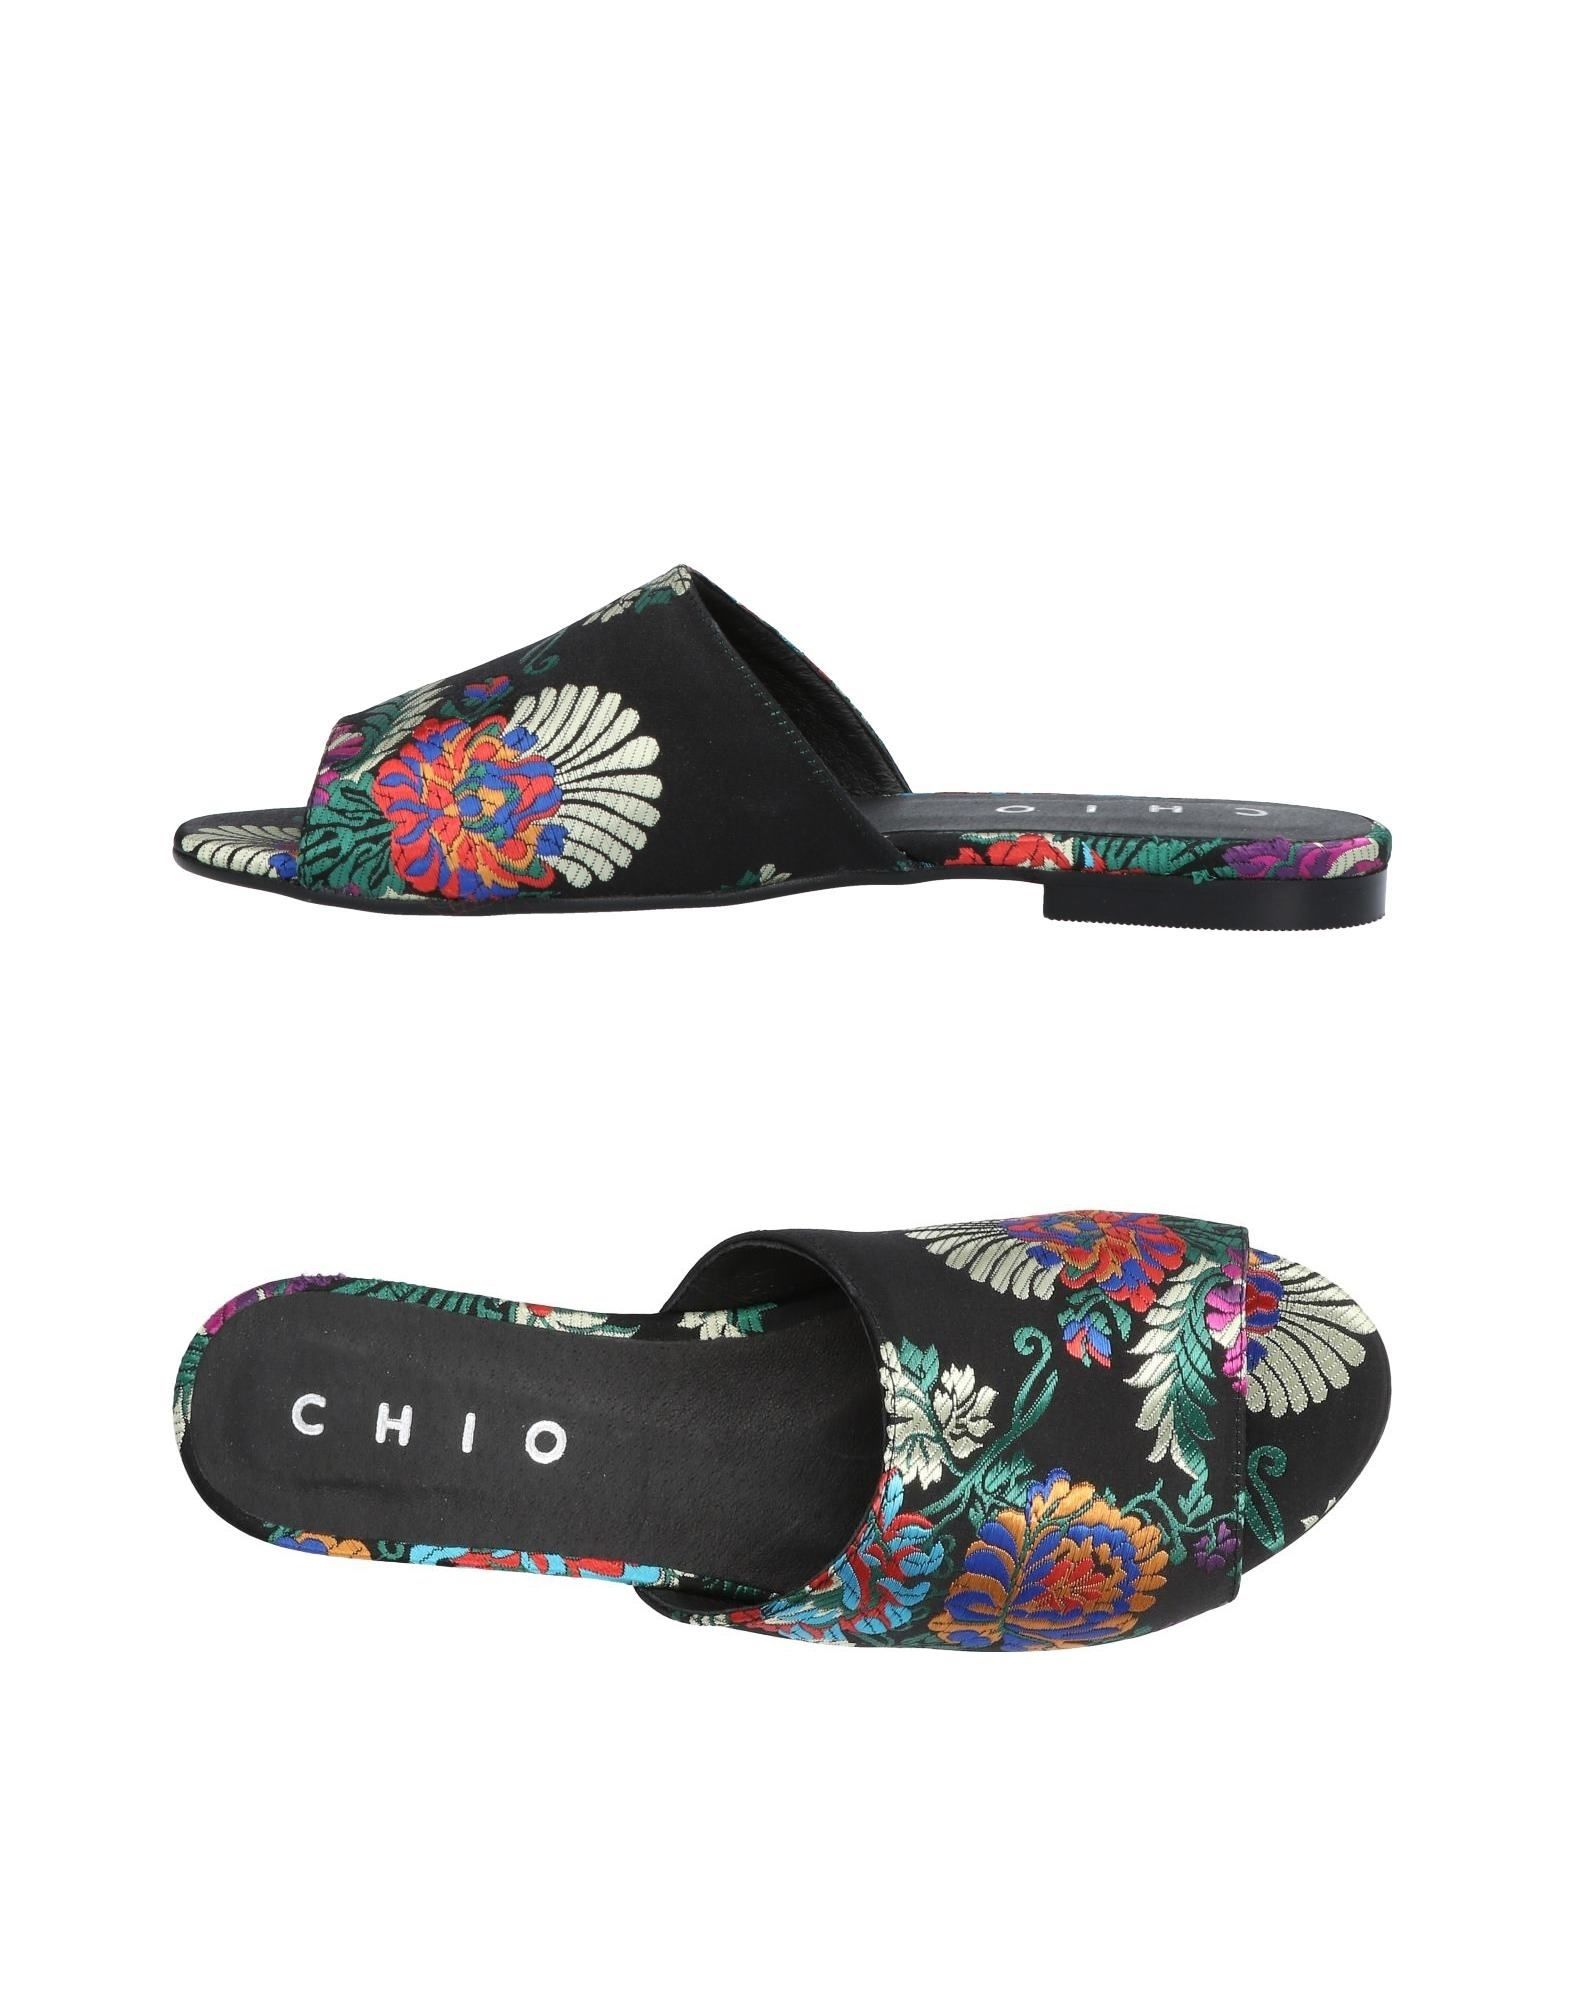 CHIO Sandals in Black